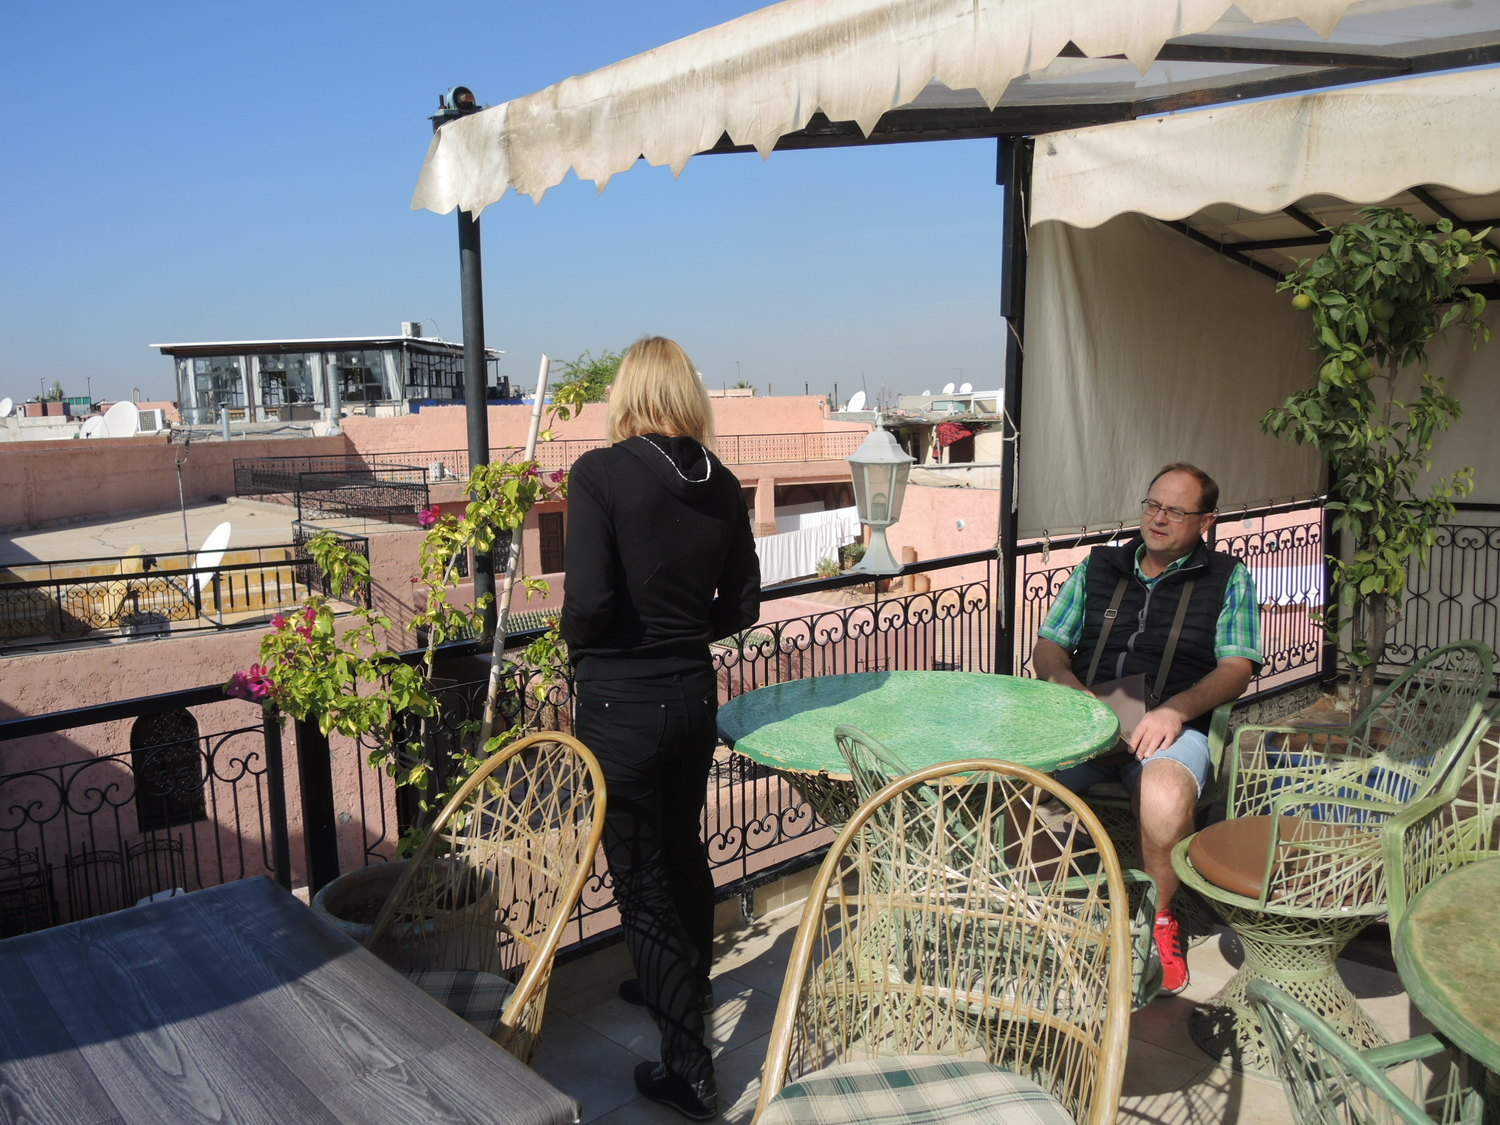 Morning on a terrace in Marrakech